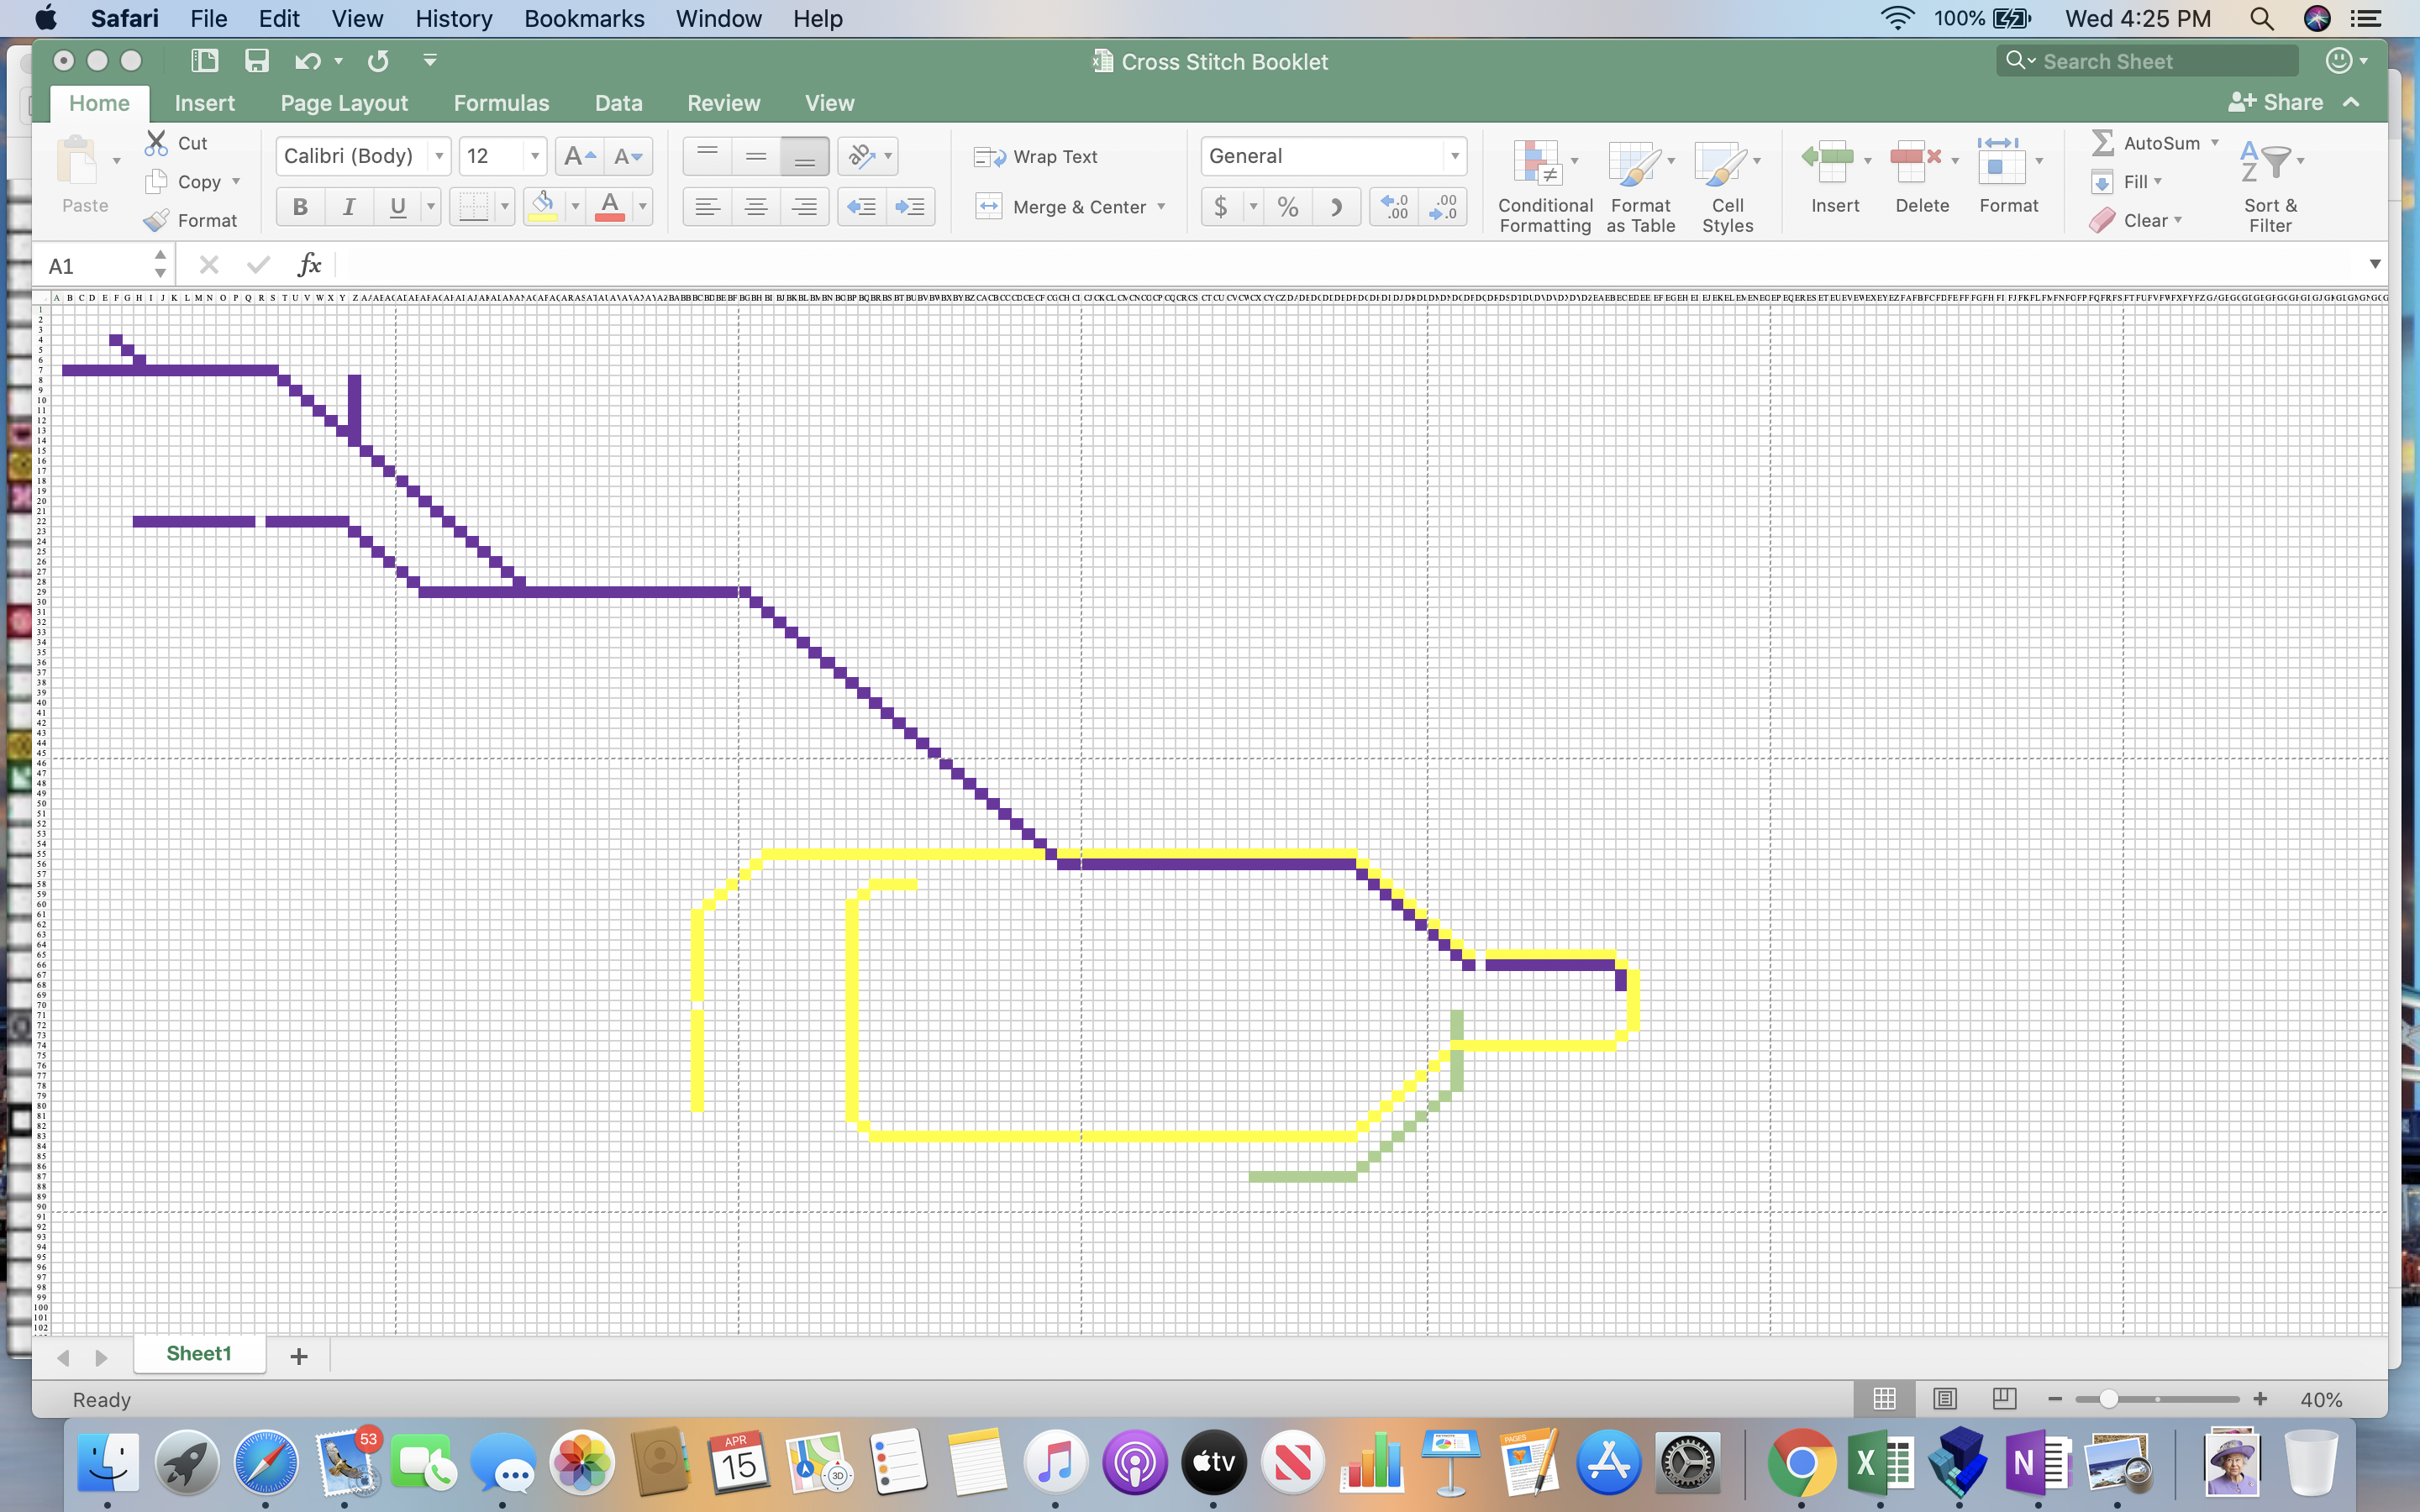 a screenshot of an excel spreadsheet showing a cross stitch pattern in progress. Currently pictured are the Metropolitan Line, the Circle Line, and the Waterloo and City Line